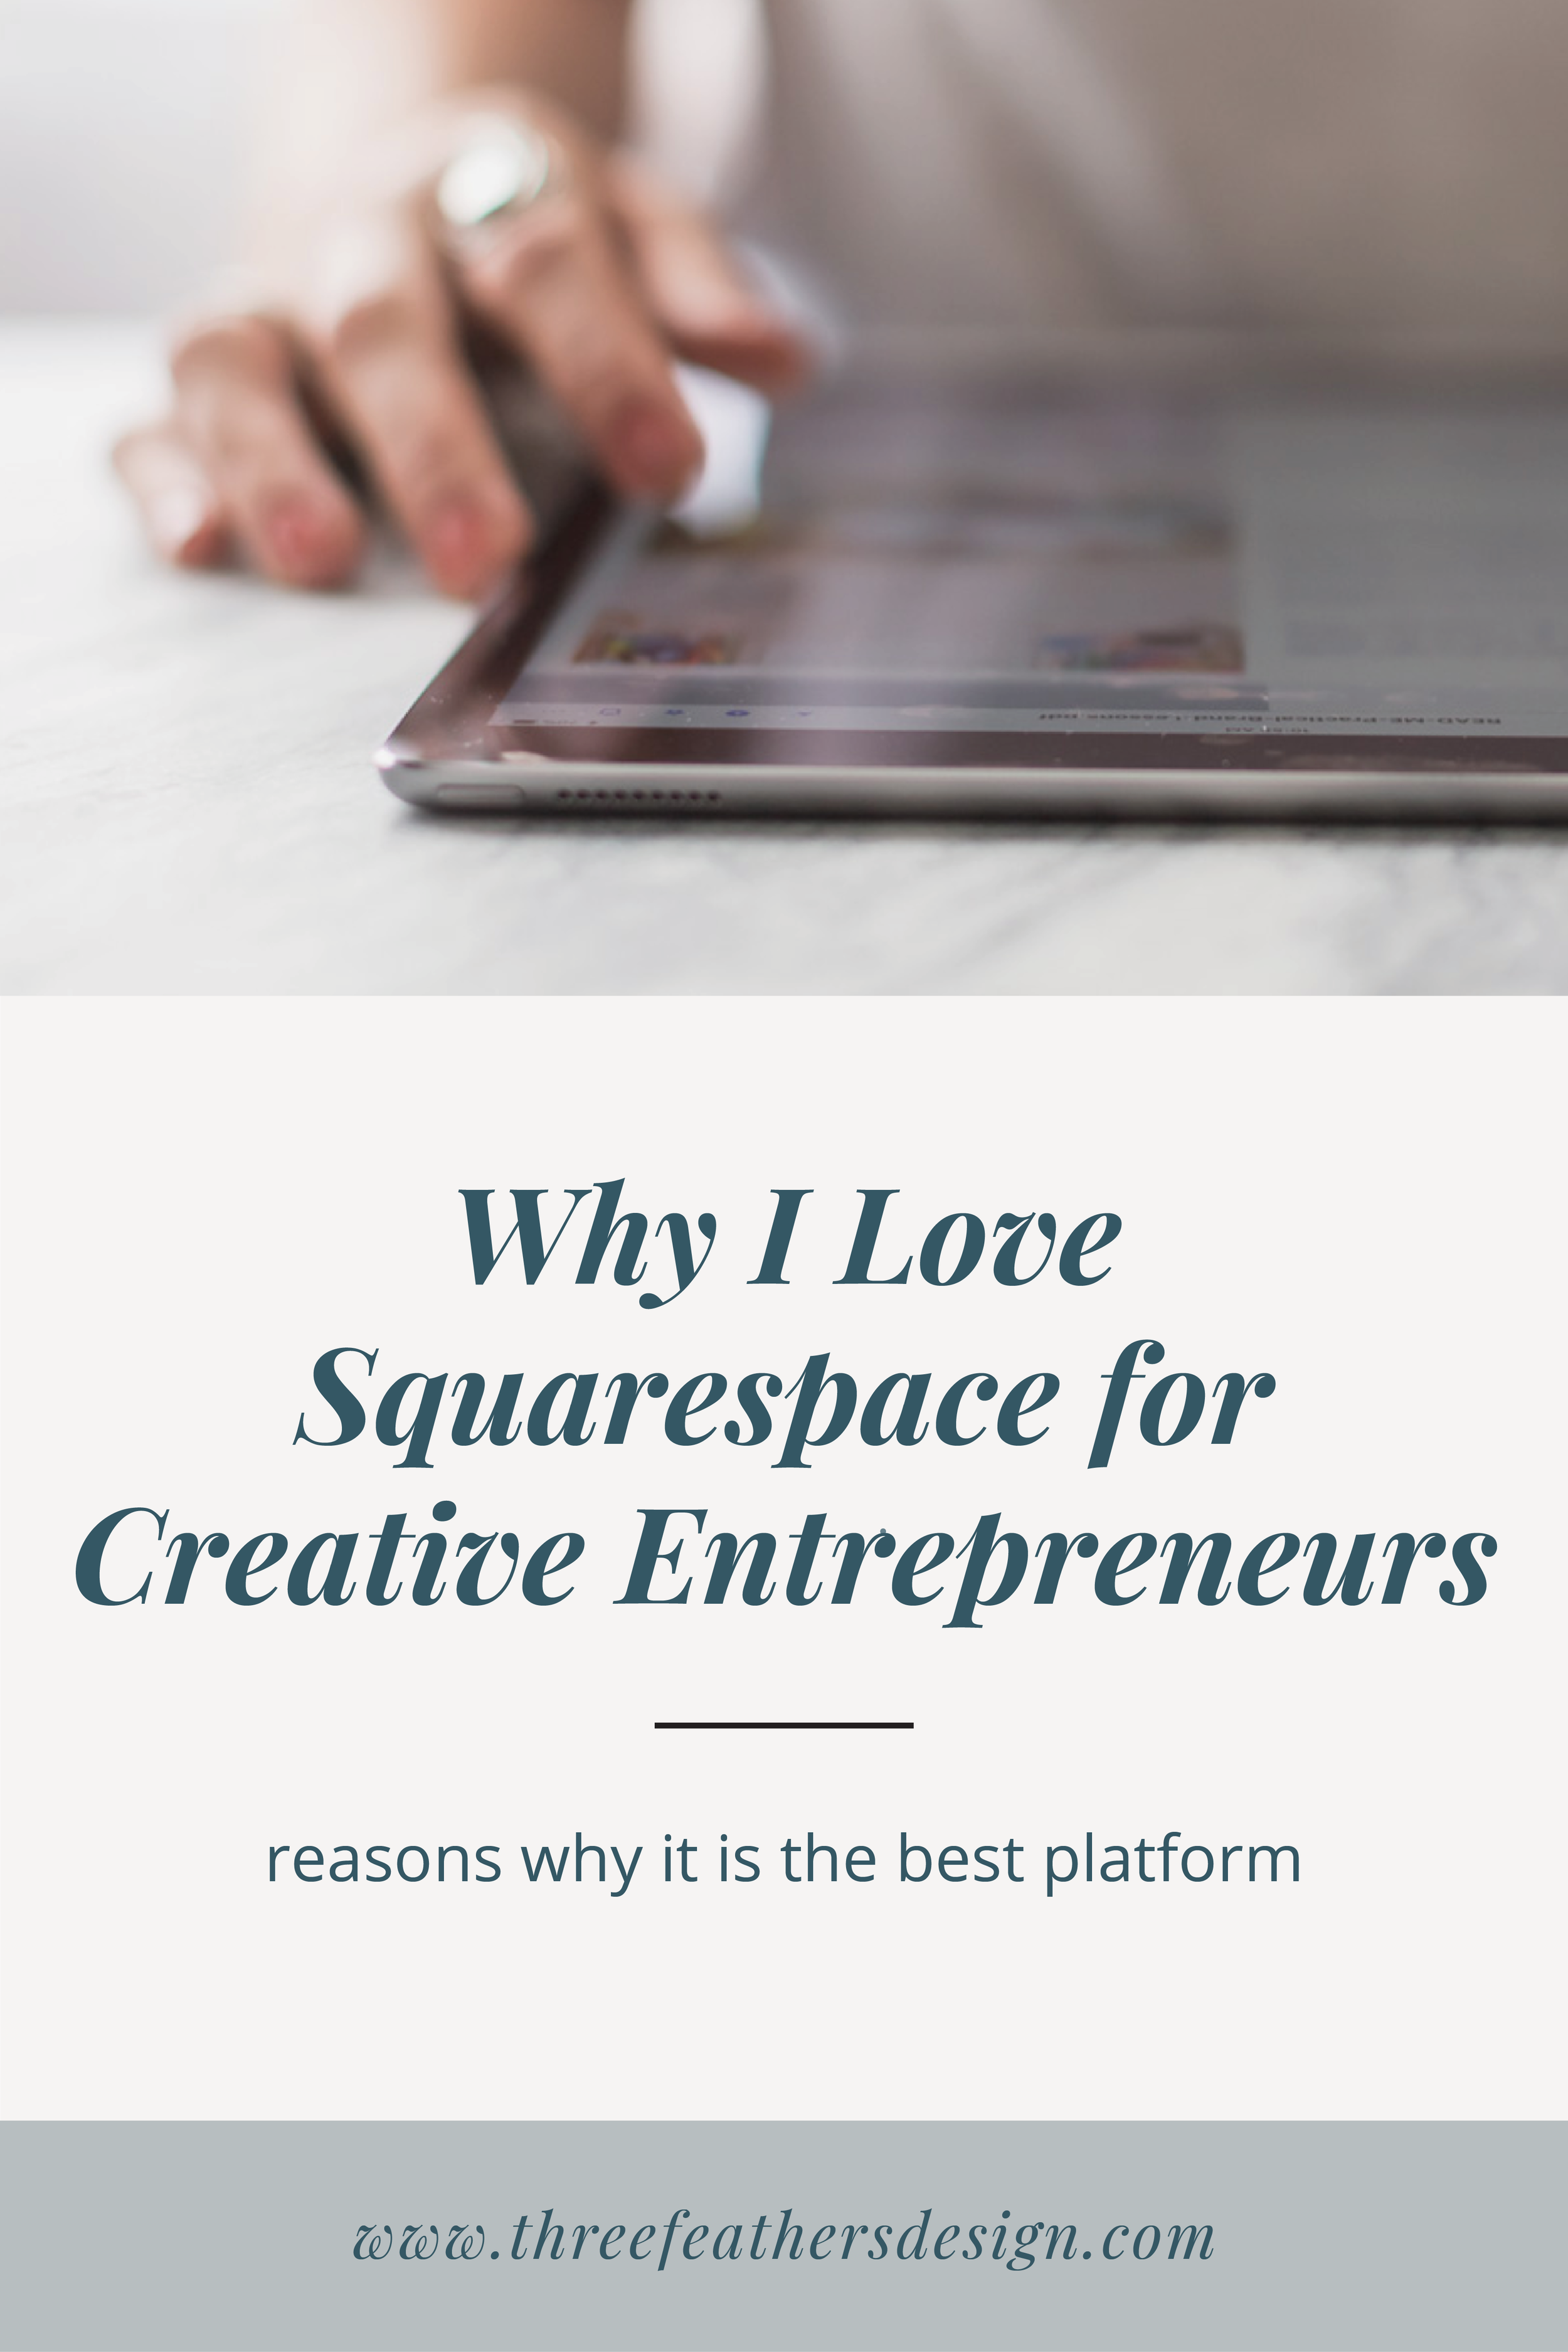 squarespace-03.png